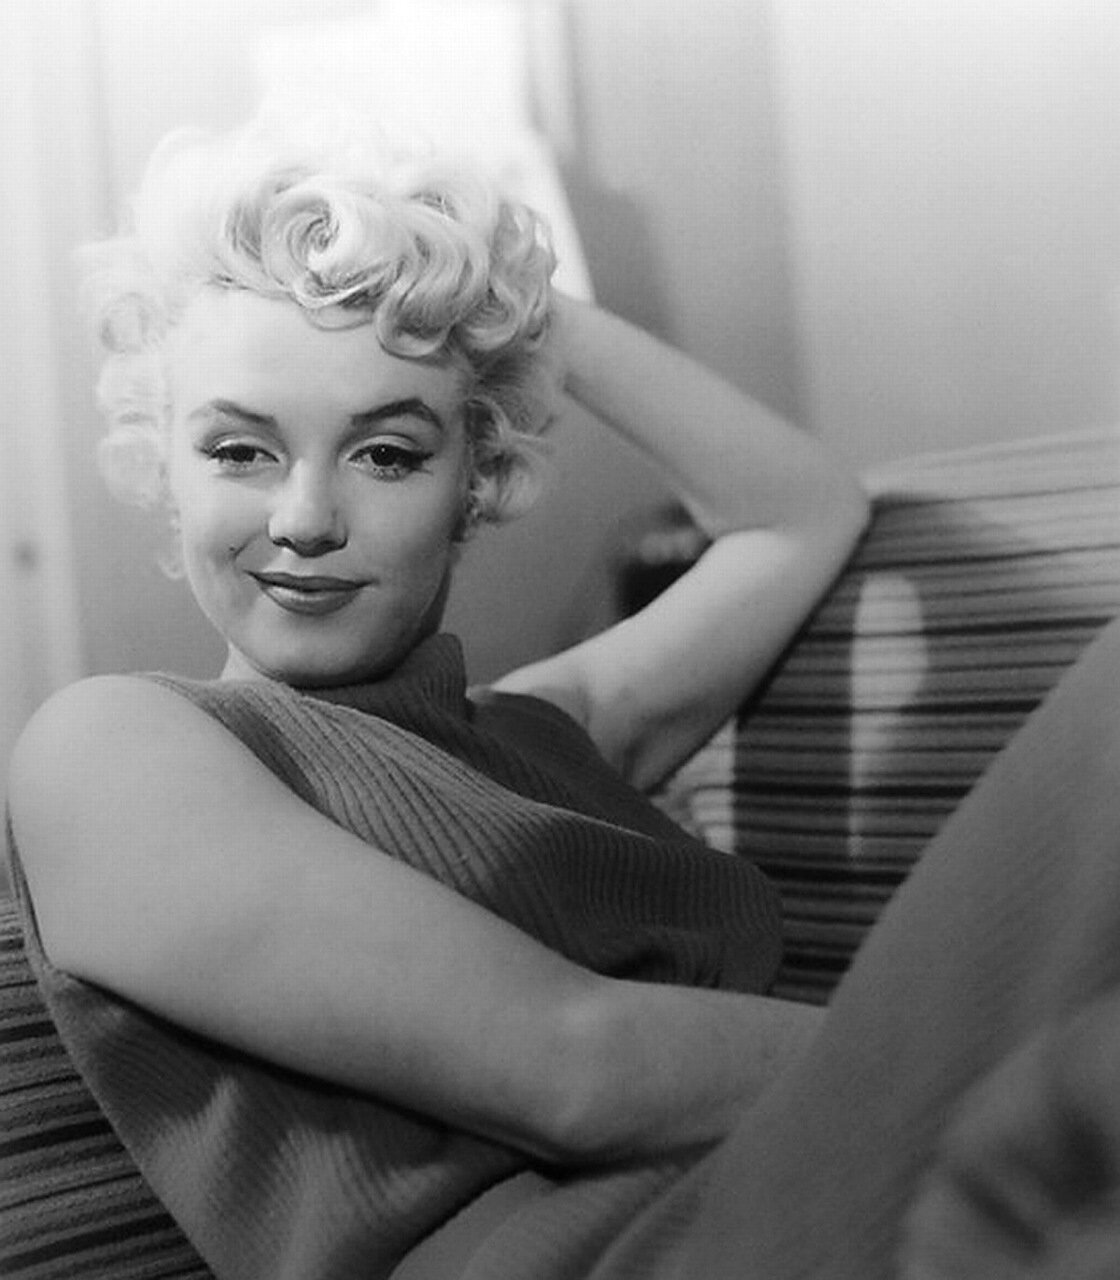 case study marilyn monroe This case study marilyn monroe case study and other 64,000+ term papers, college essay examples and free essays are available now on reviewessayscom autor: review • december 18, 2010 • case study • 1,663 words (7 pages) • 1,592 views.